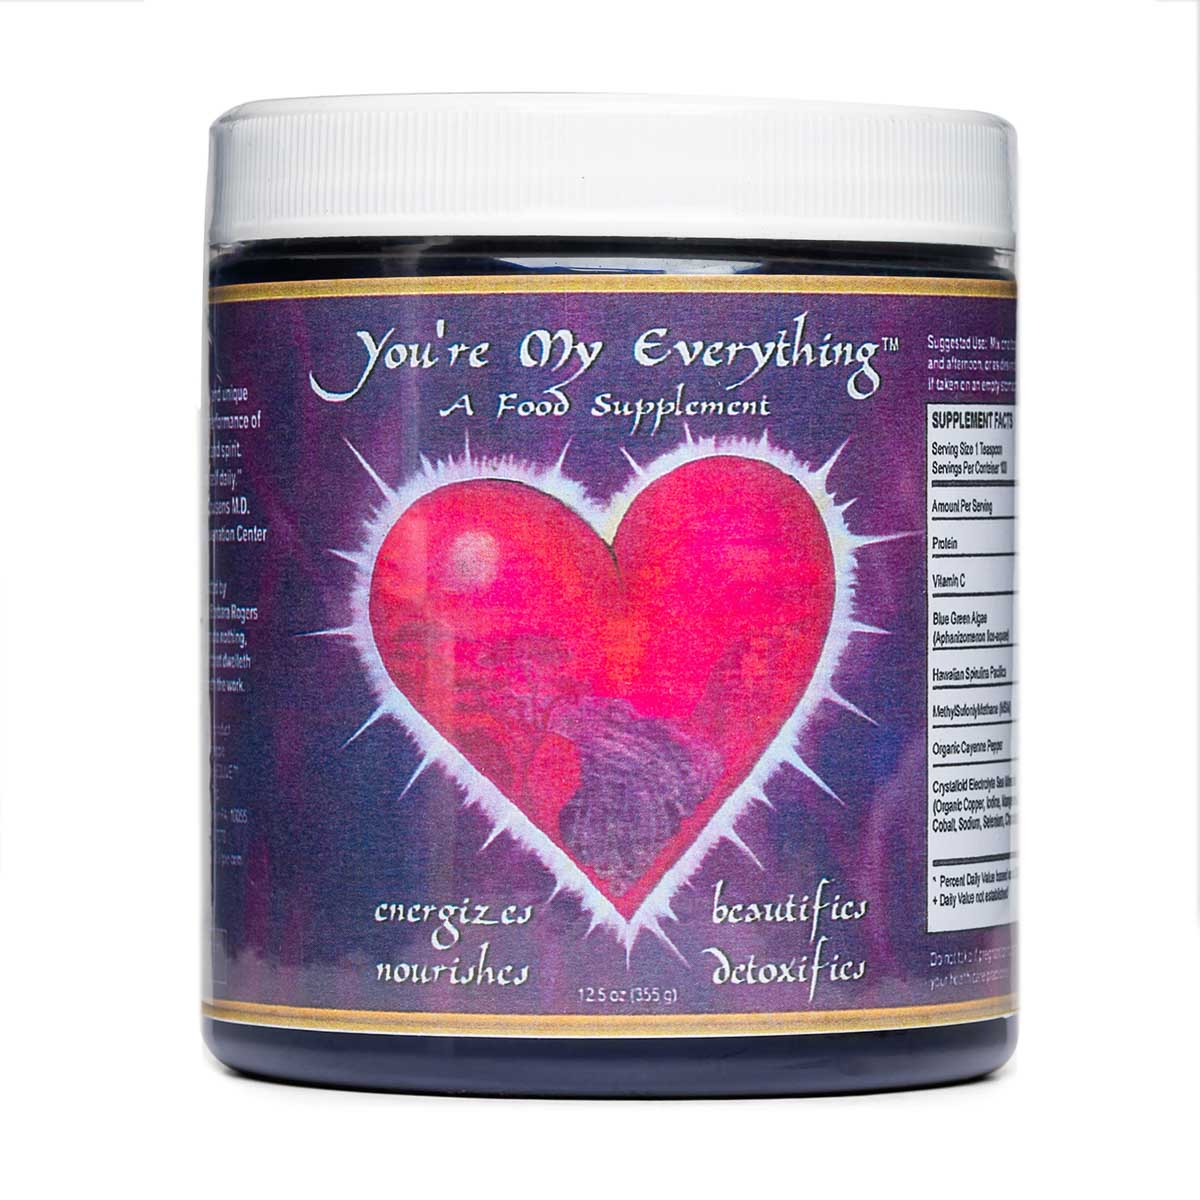 You're My Everything (12.5oz) - Simply Divine Botanicals